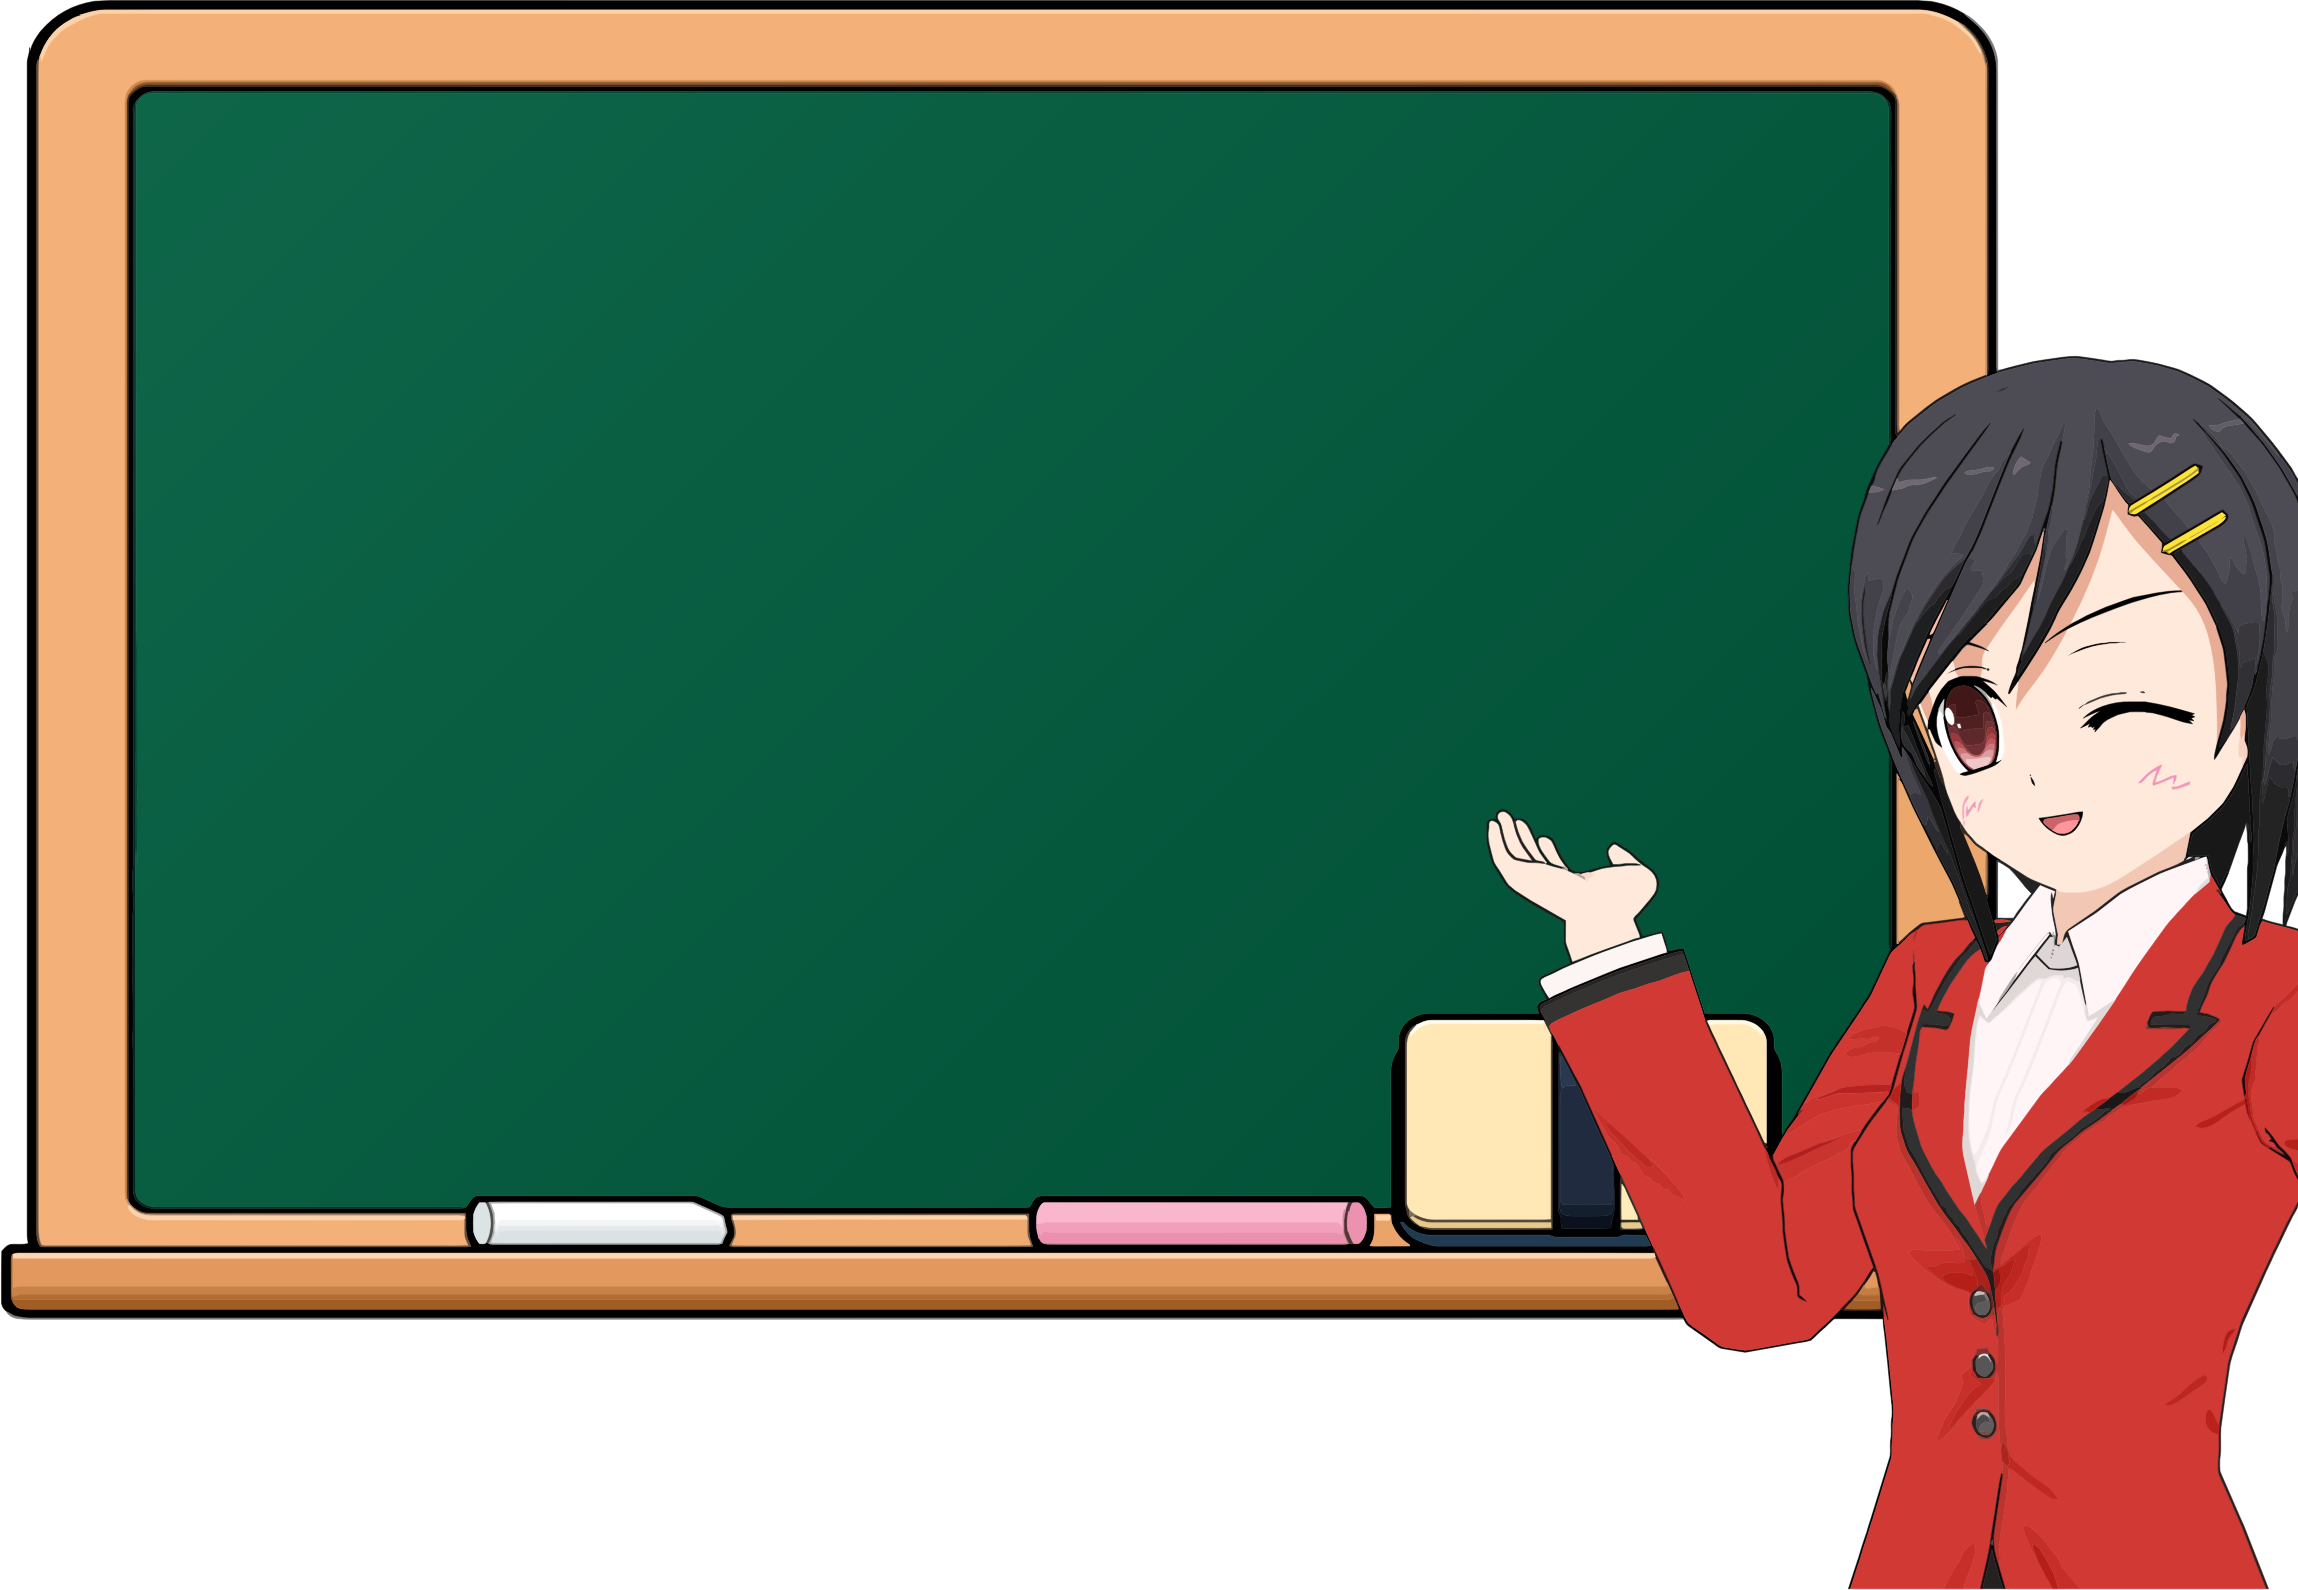 Chalkboard pictures clip art image transparent stock Clipart - Anime Girl School Chalkboard 2 image transparent stock